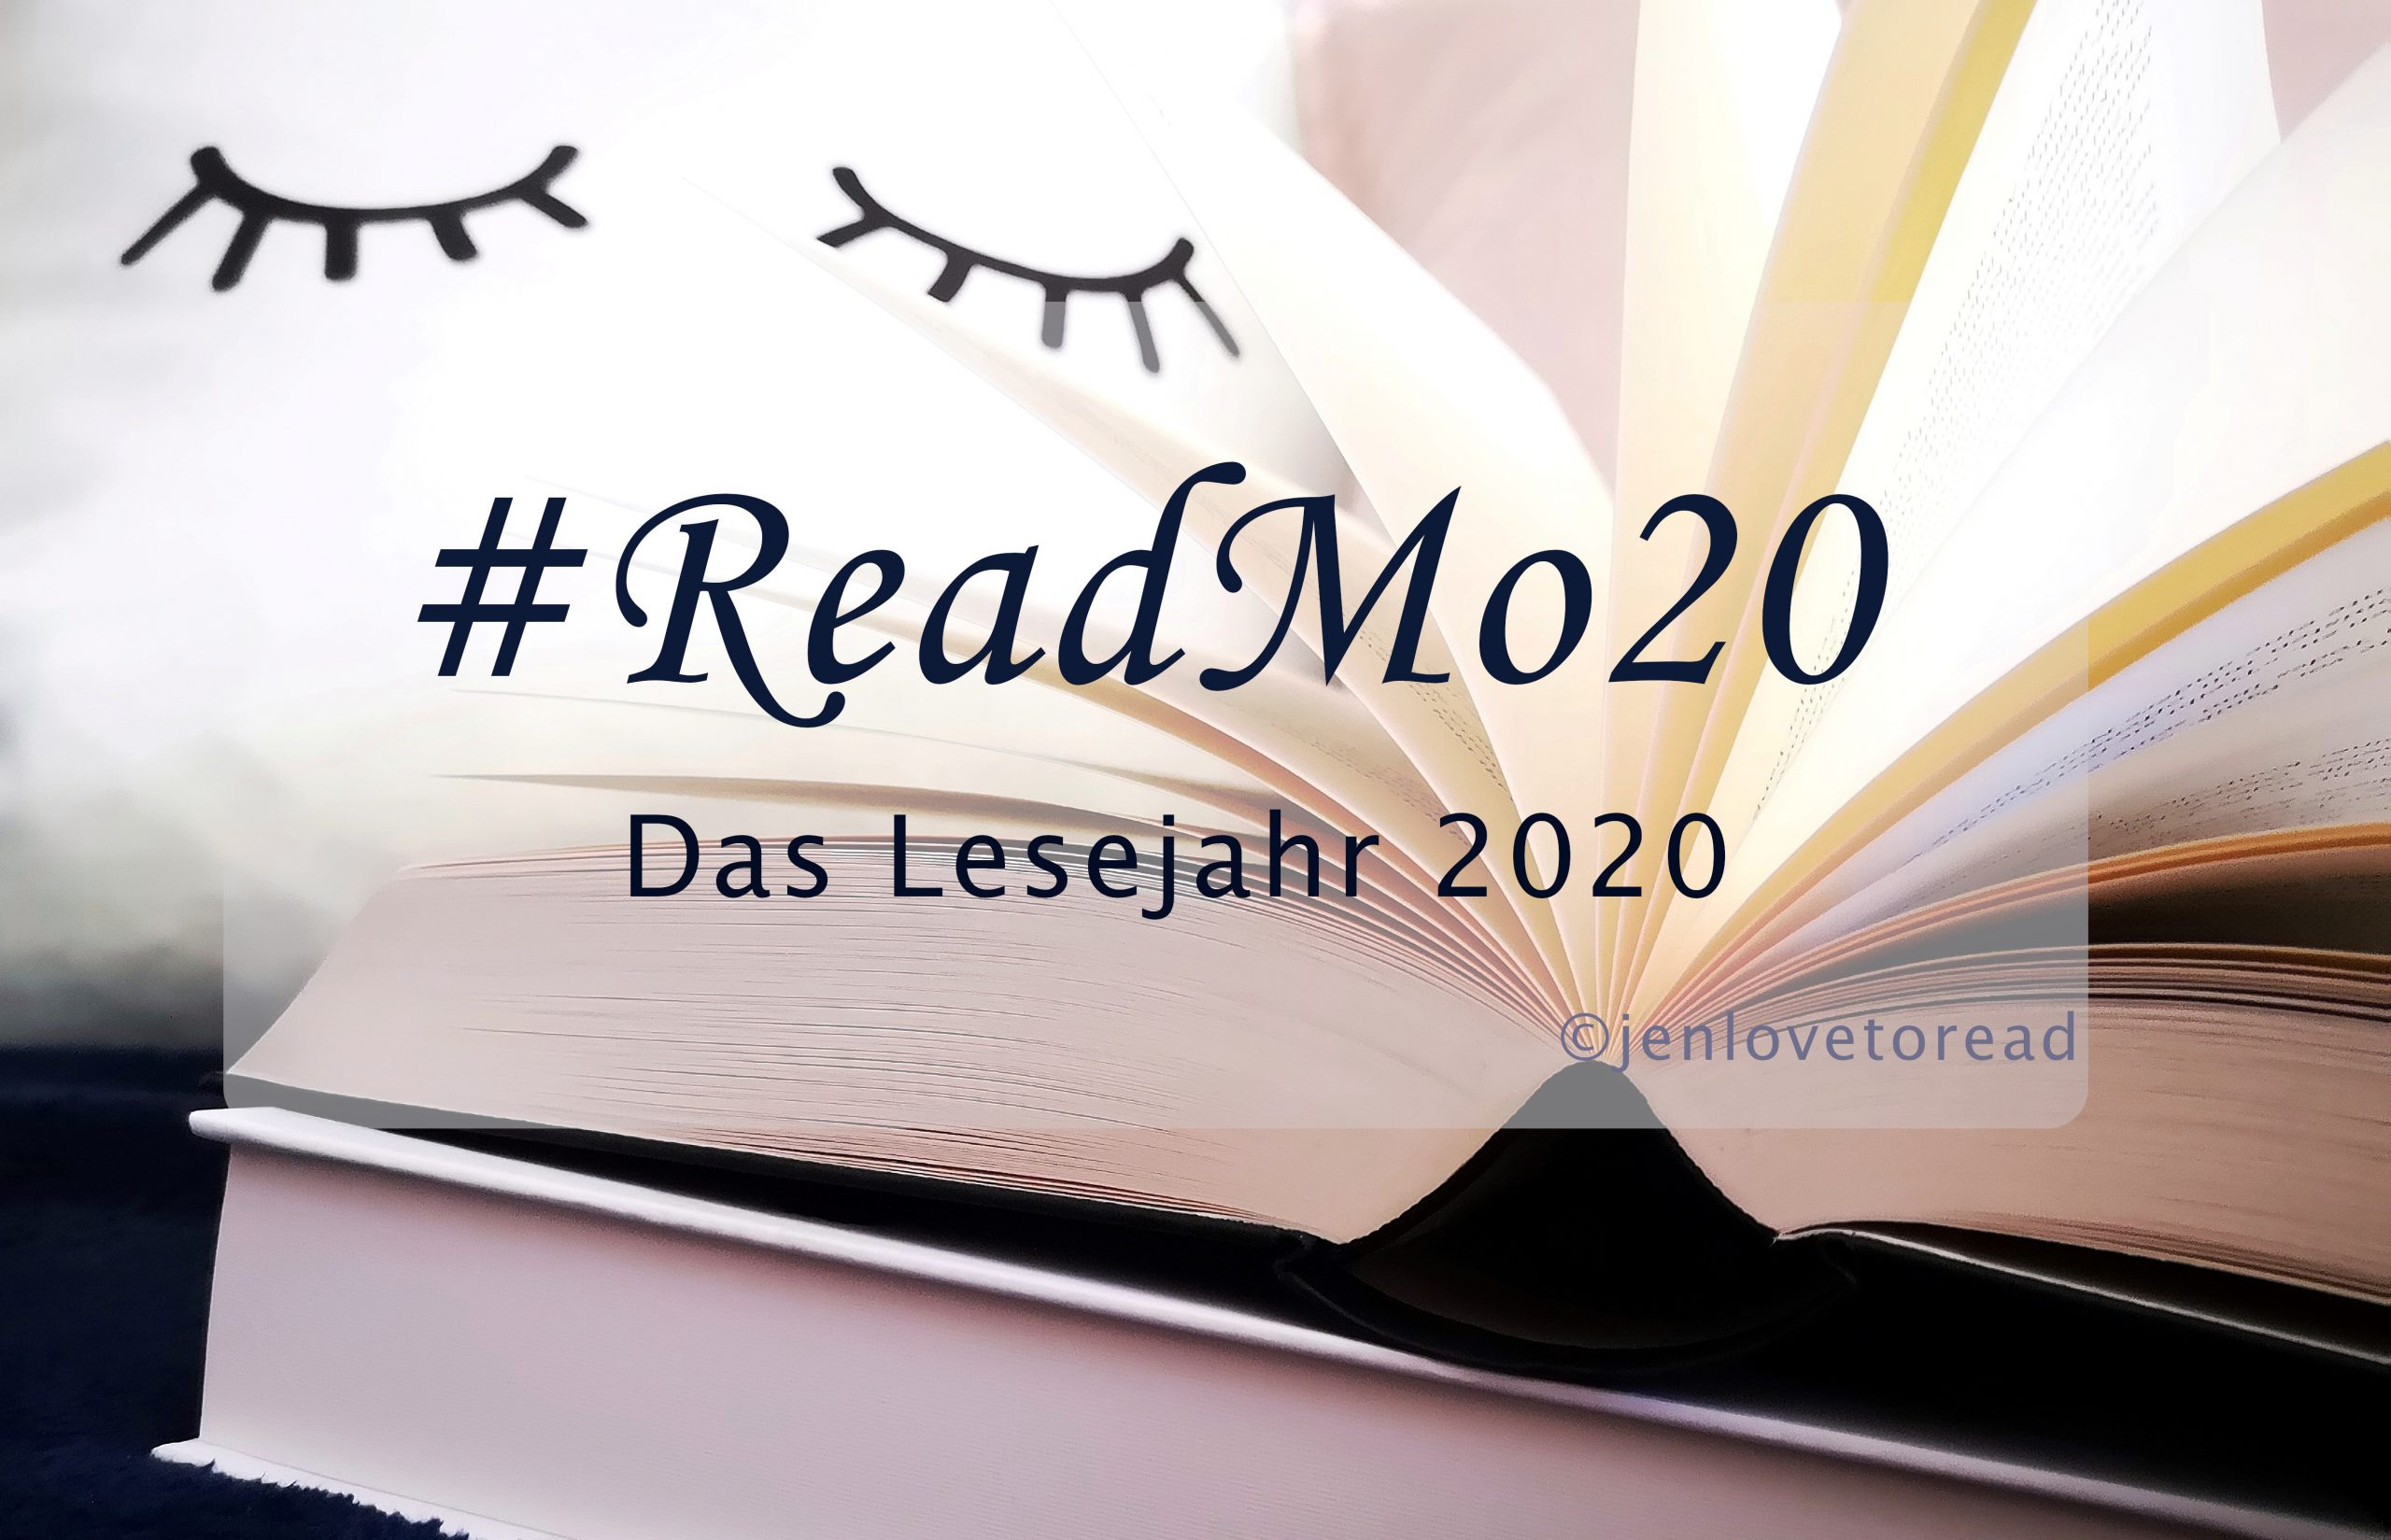 März – #MarReadMo20